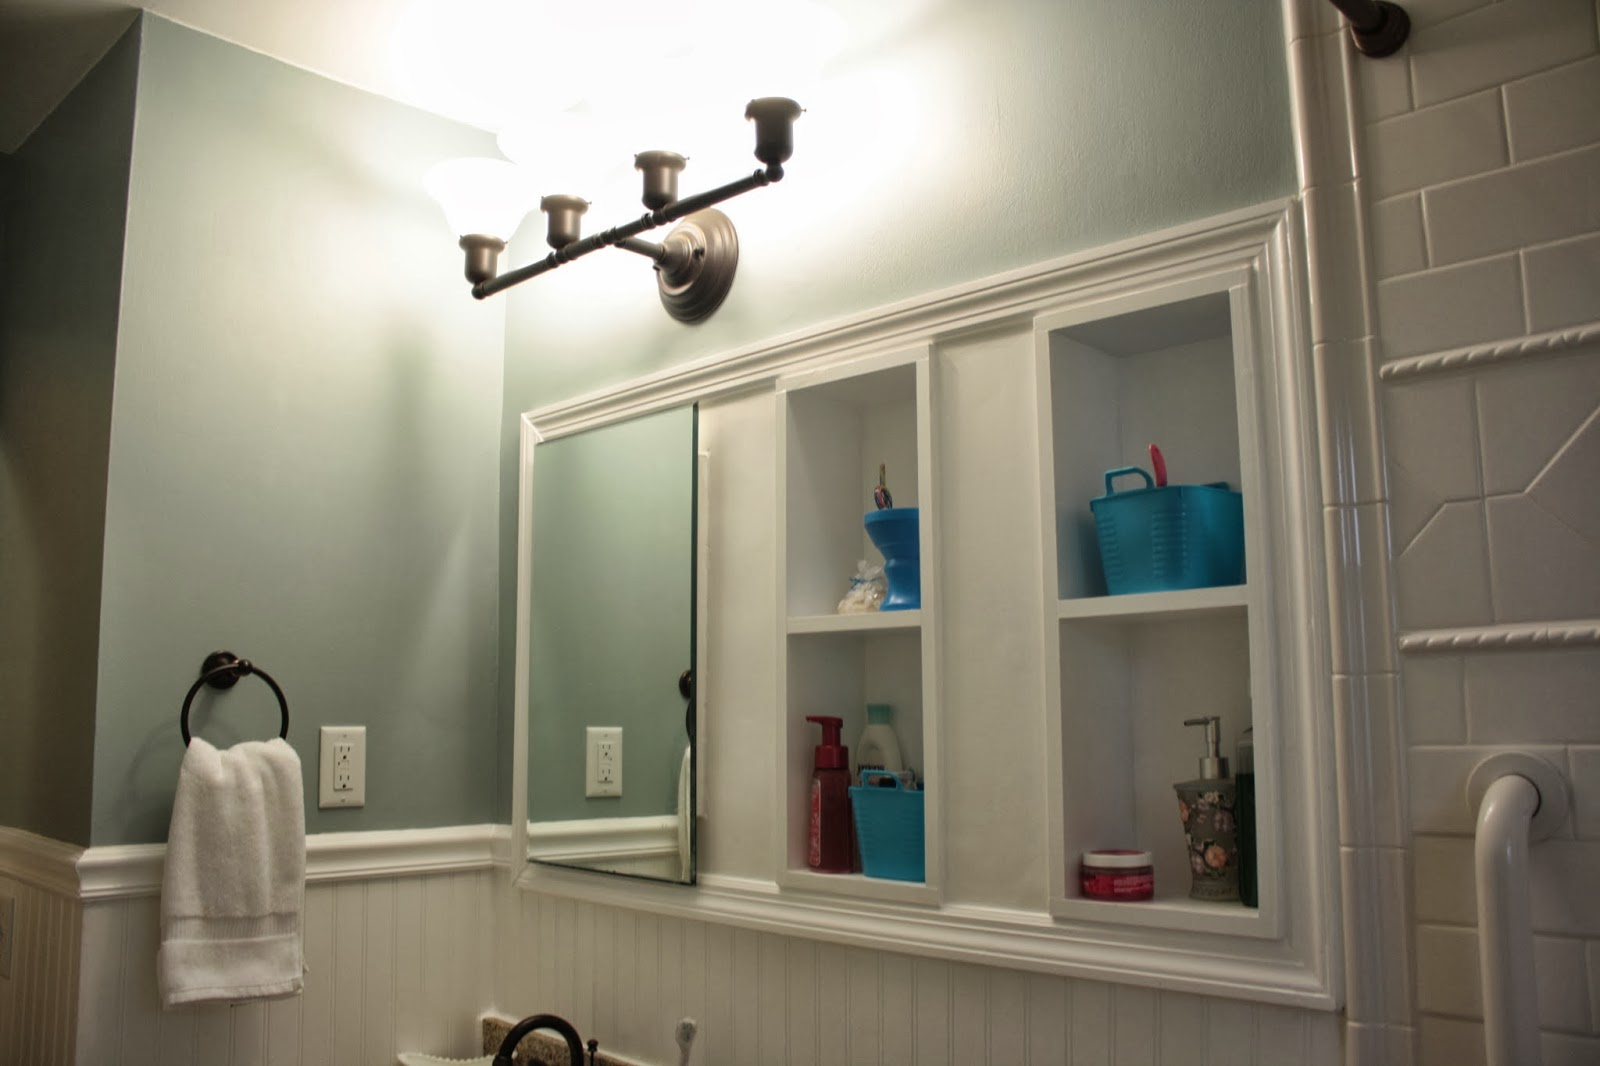 Bathroom Vanity Lights Facing Up a beautiful new bath | anne thompson designs